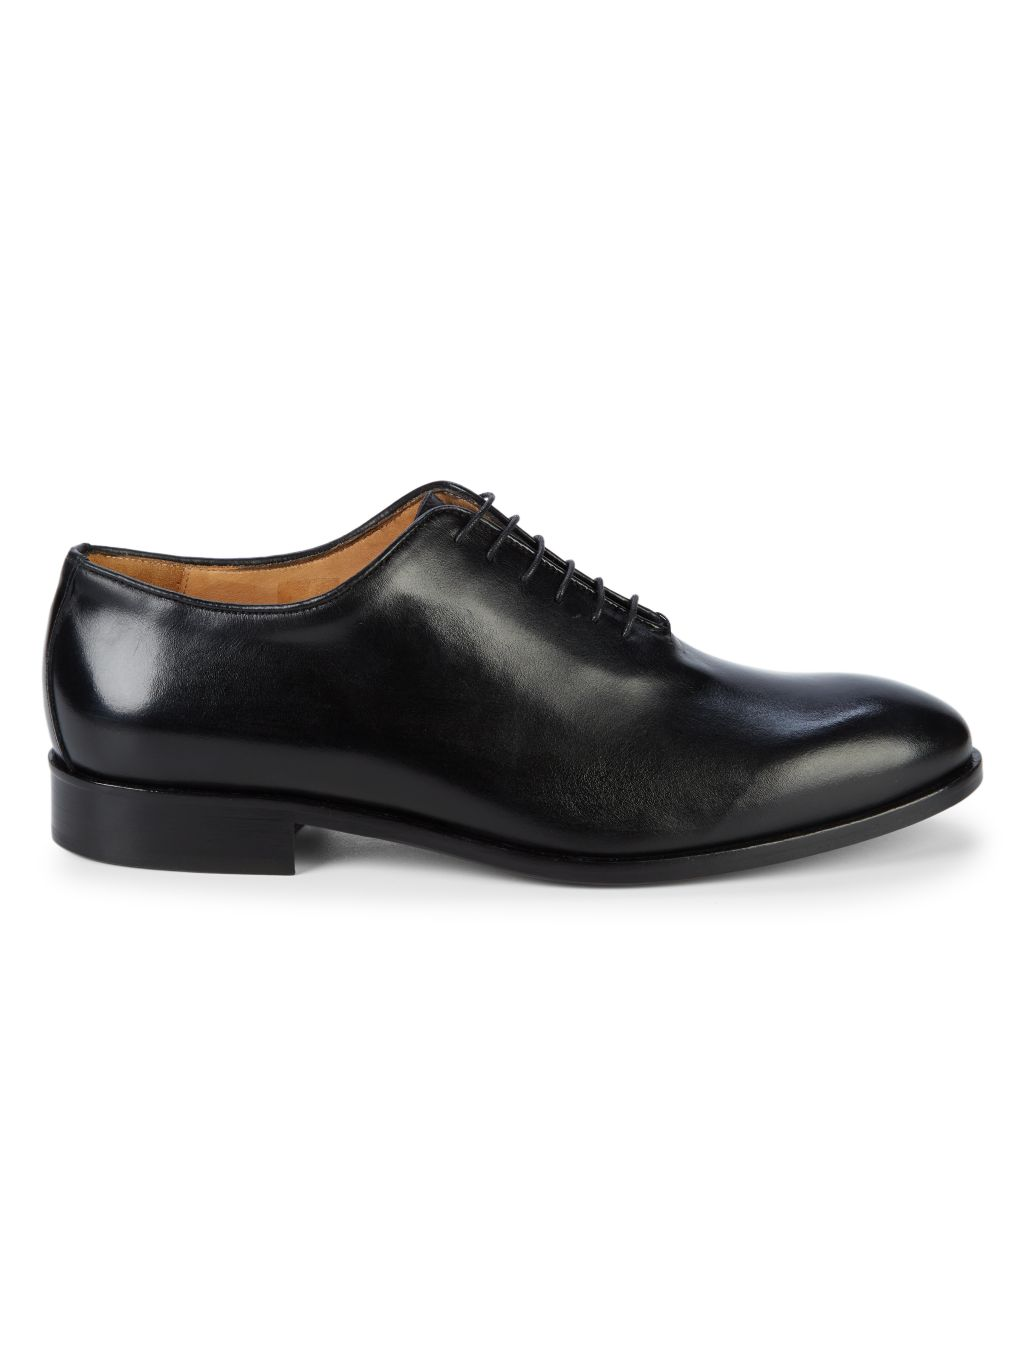 Saks Fifth Avenue Made in Italy Leather Oxfords